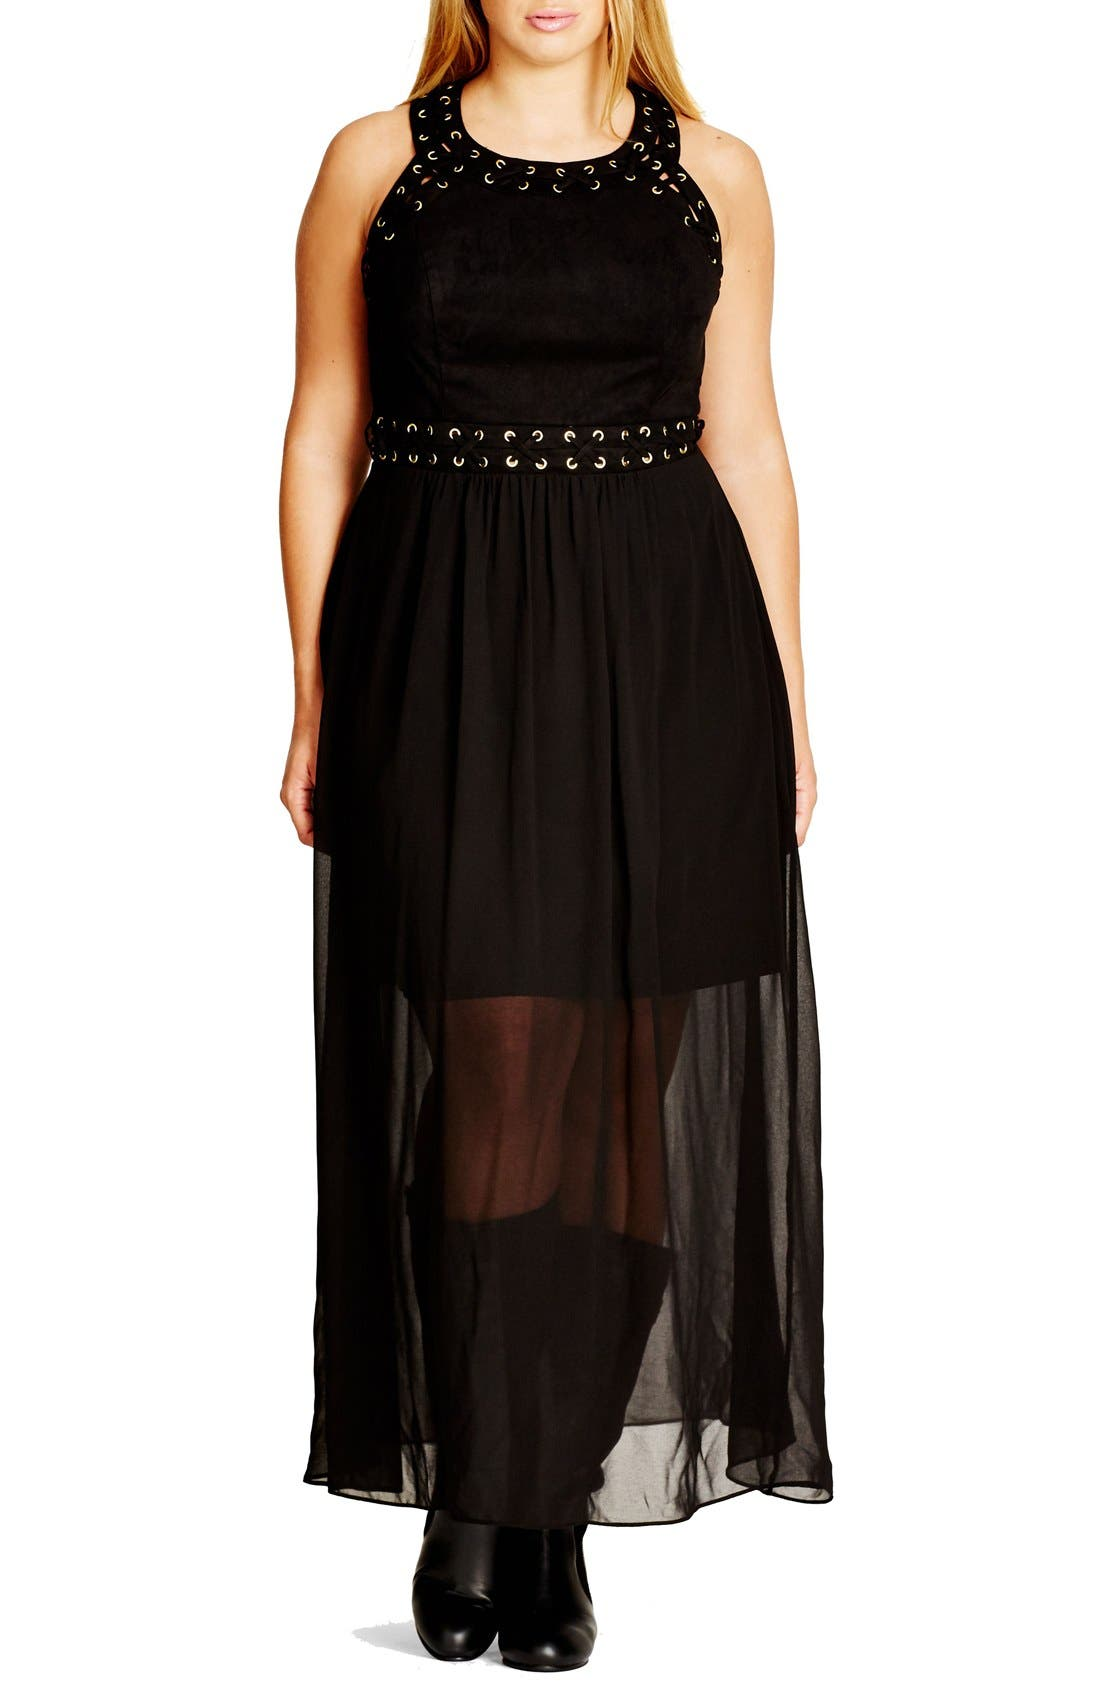 City Chic 'Rhianna' Lace-Up Trim Faux Suede & Chiffon Maxi Dress (Plus Size)